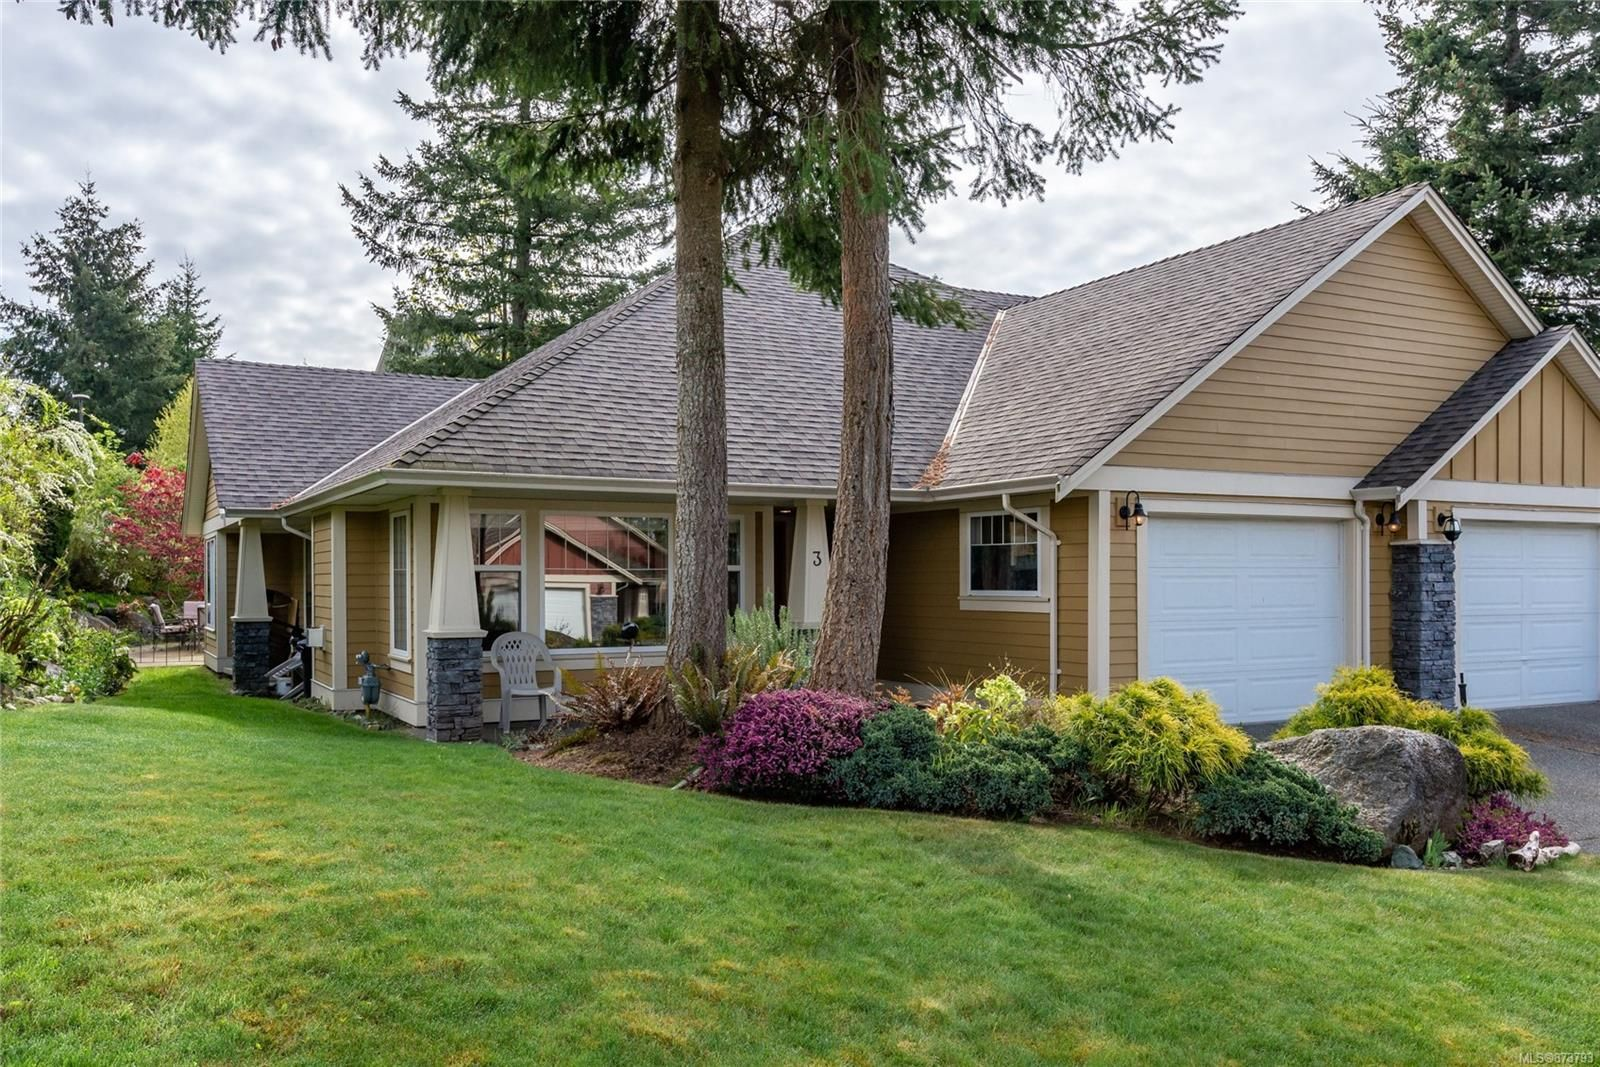 Main Photo: 3 769 Merecroft Rd in : CR Campbell River Central Row/Townhouse for sale (Campbell River)  : MLS®# 873793